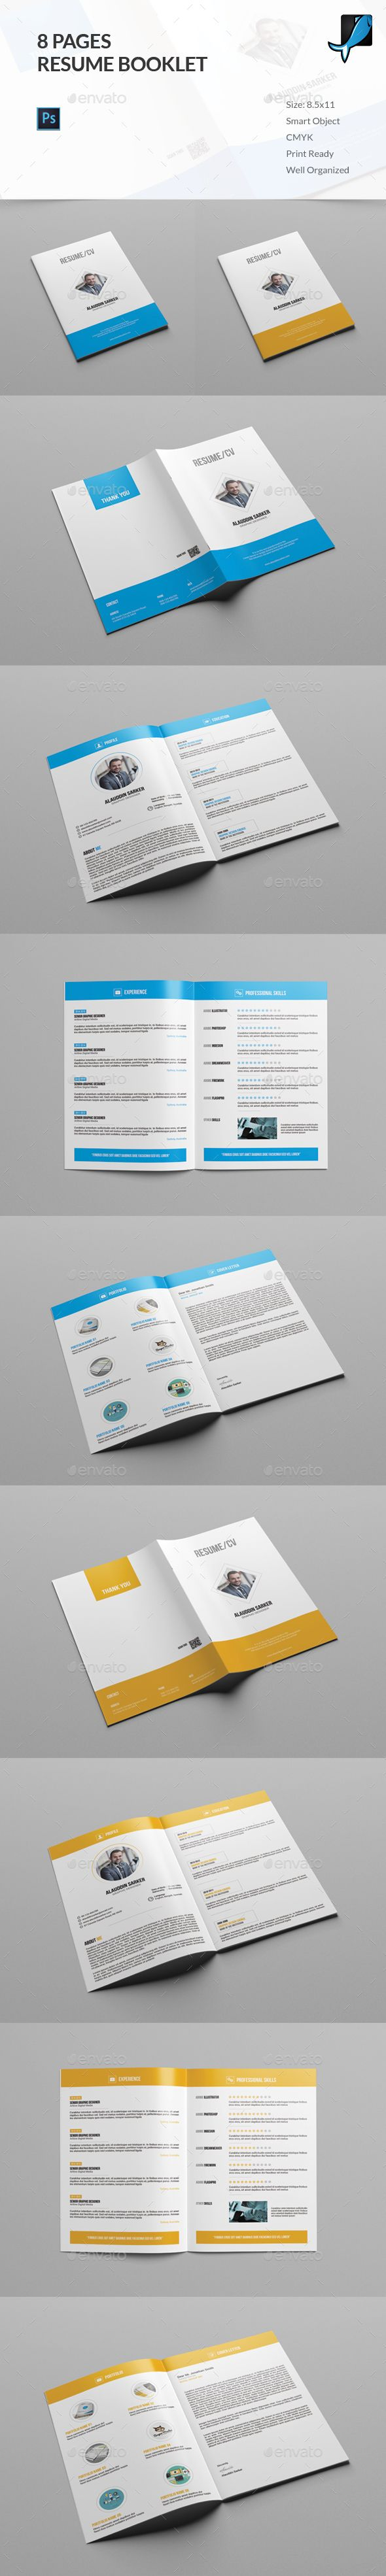 Resume Booklet (8 Pages) | Booklet template, Template and Brochures